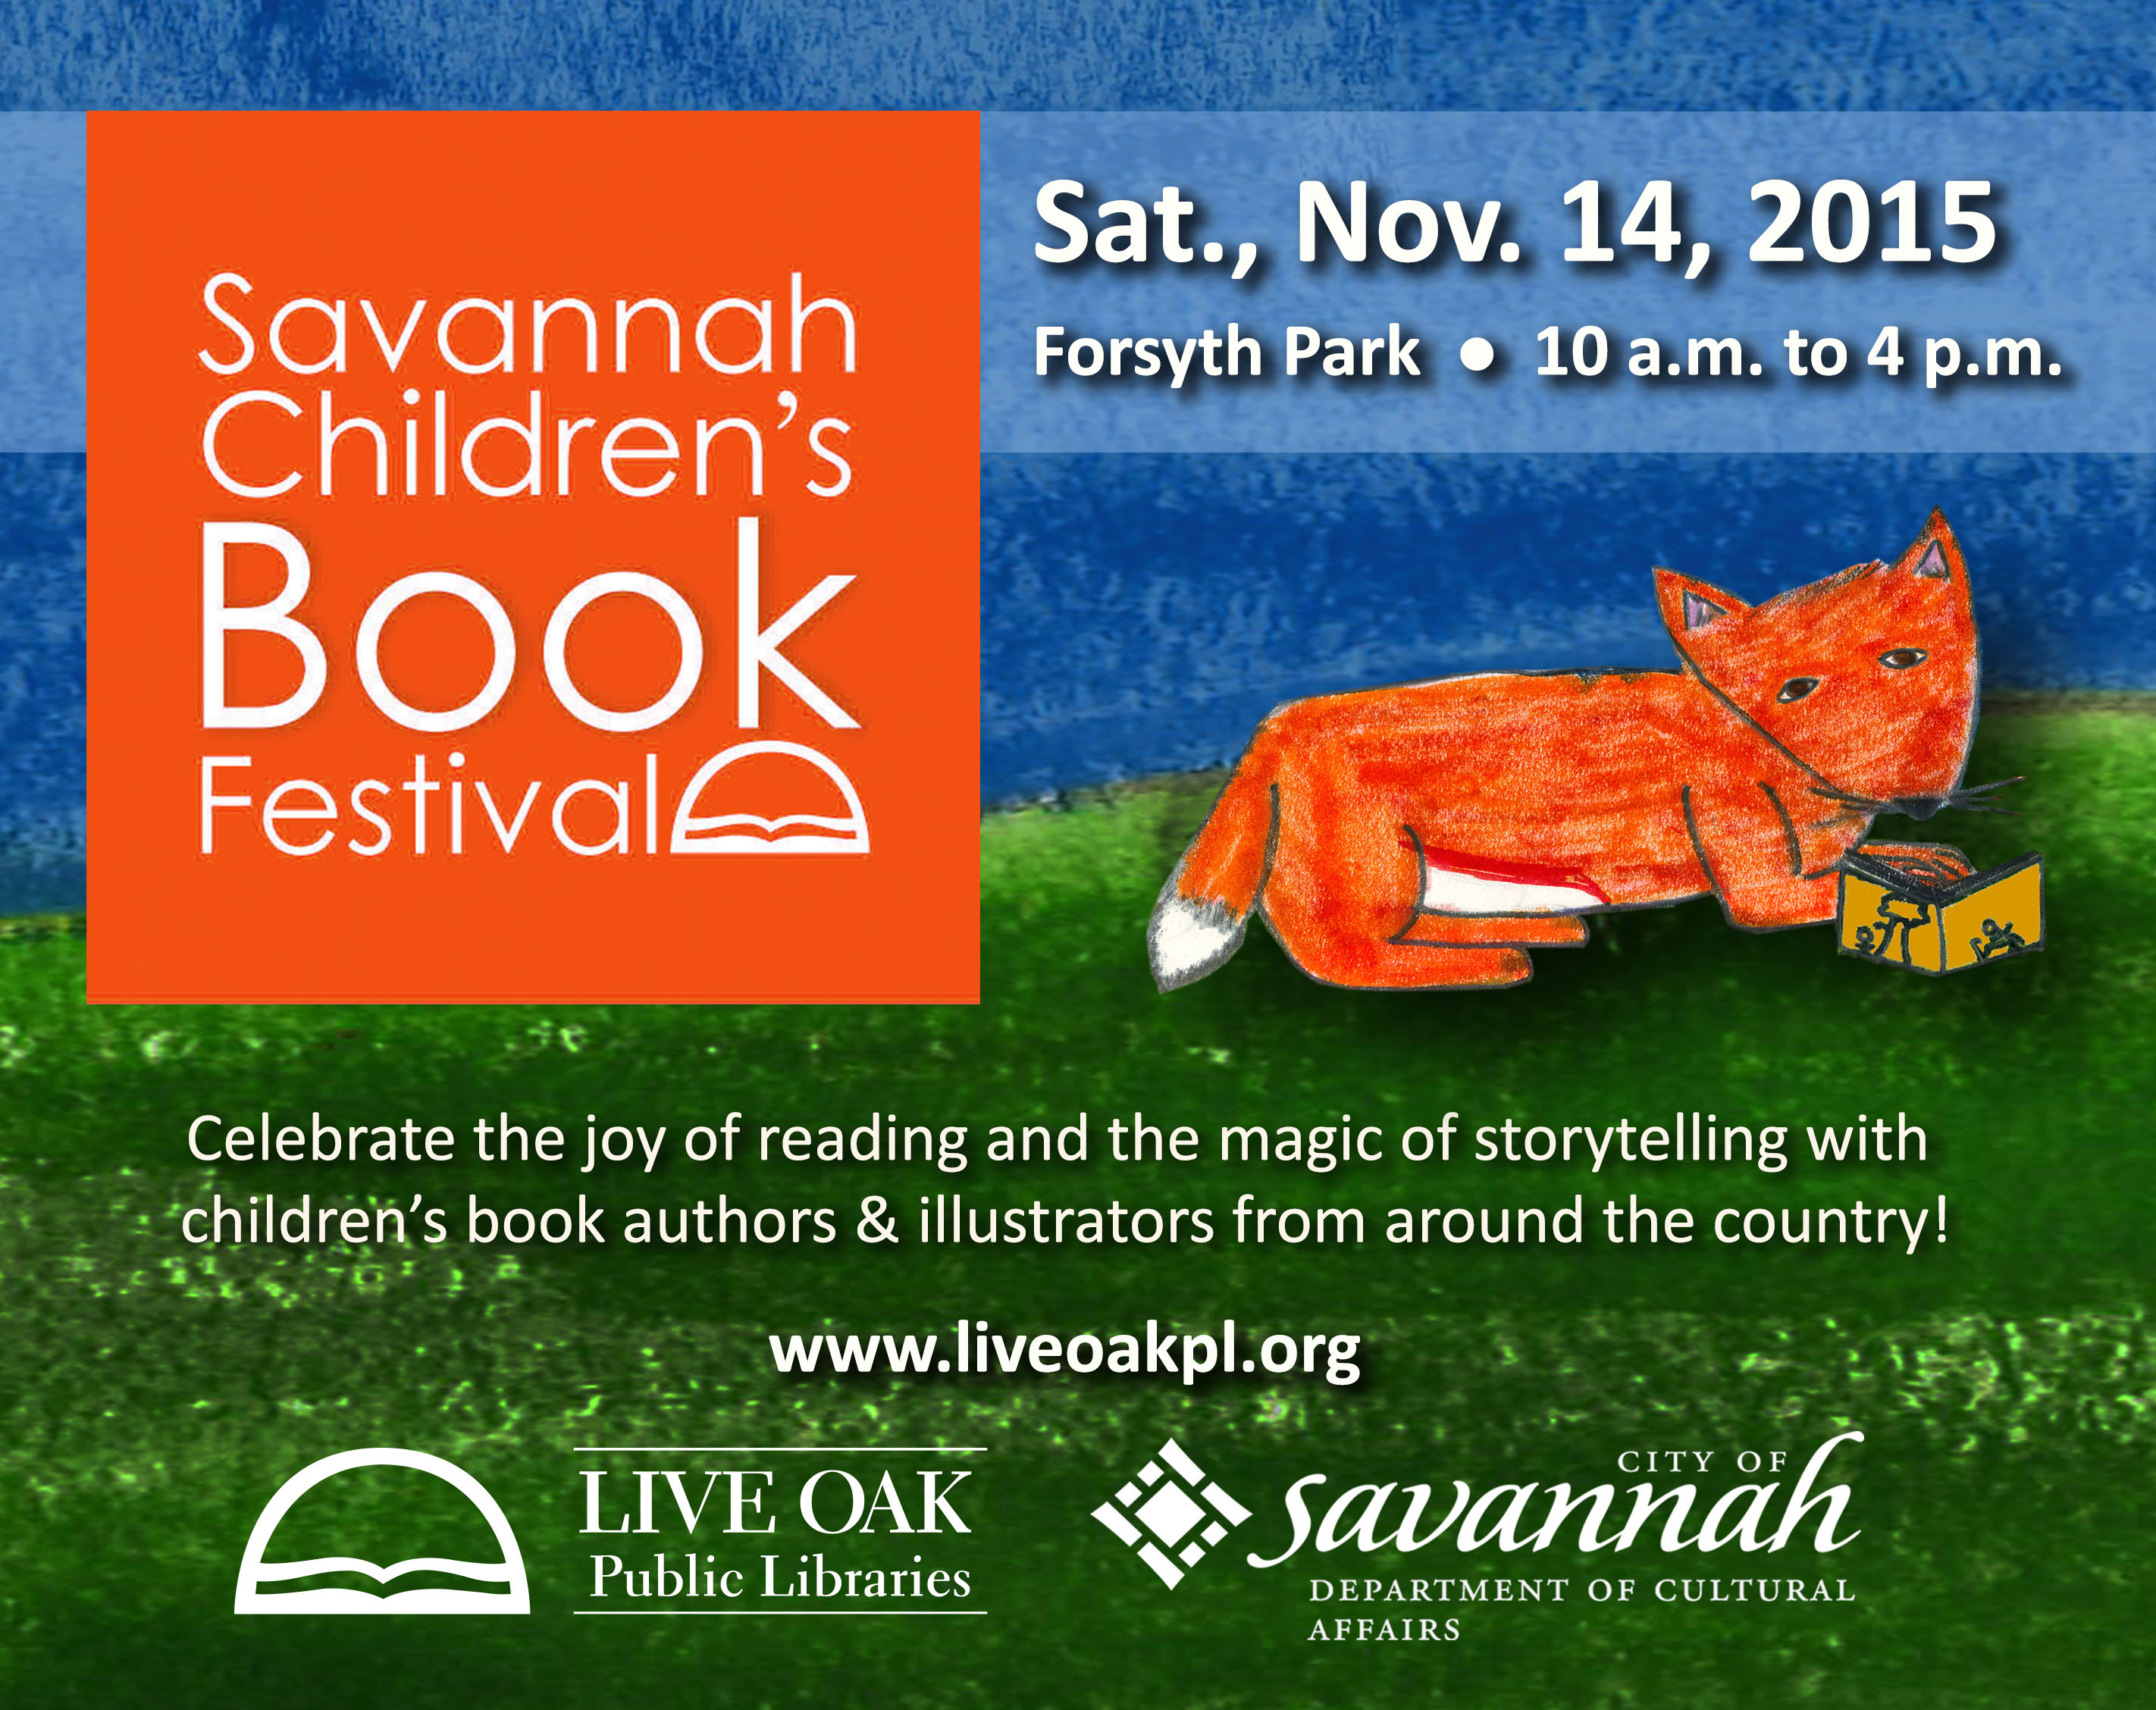 savannah-book-fesitval